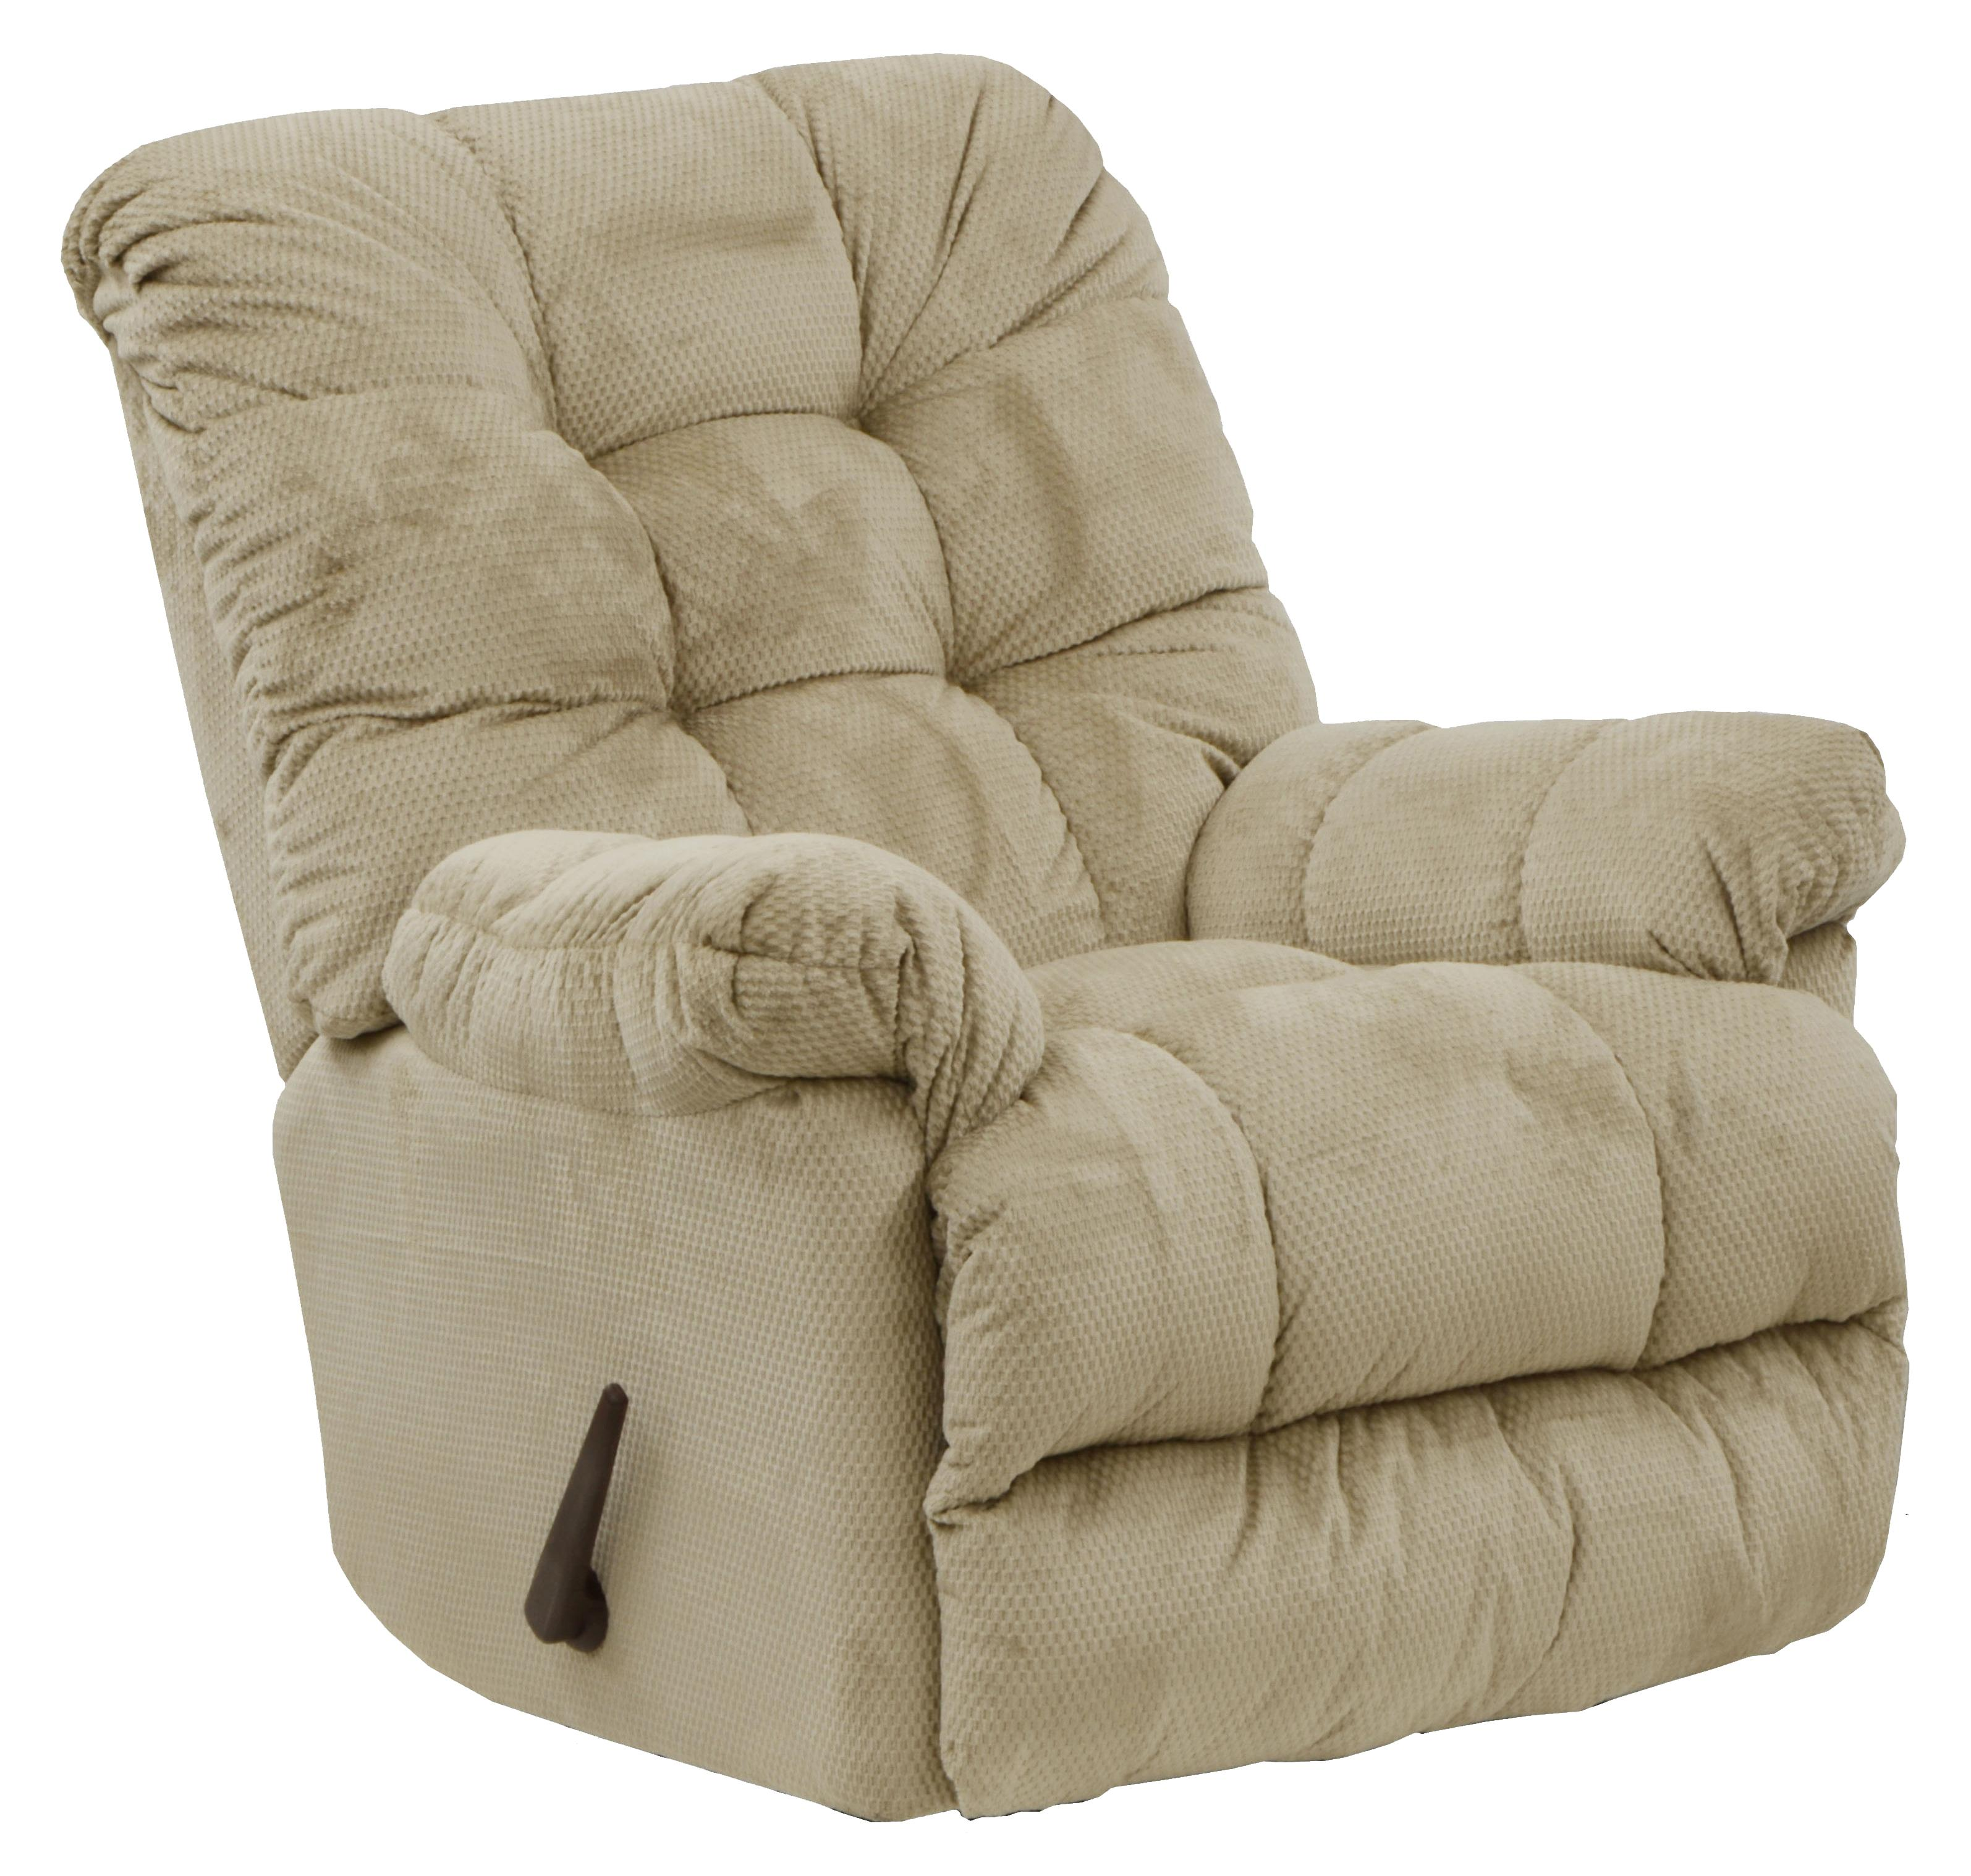 Catnapper Motion Chairs And Recliners Nettles Rocker Recliner With Heat U0026  Massage   Item Number: